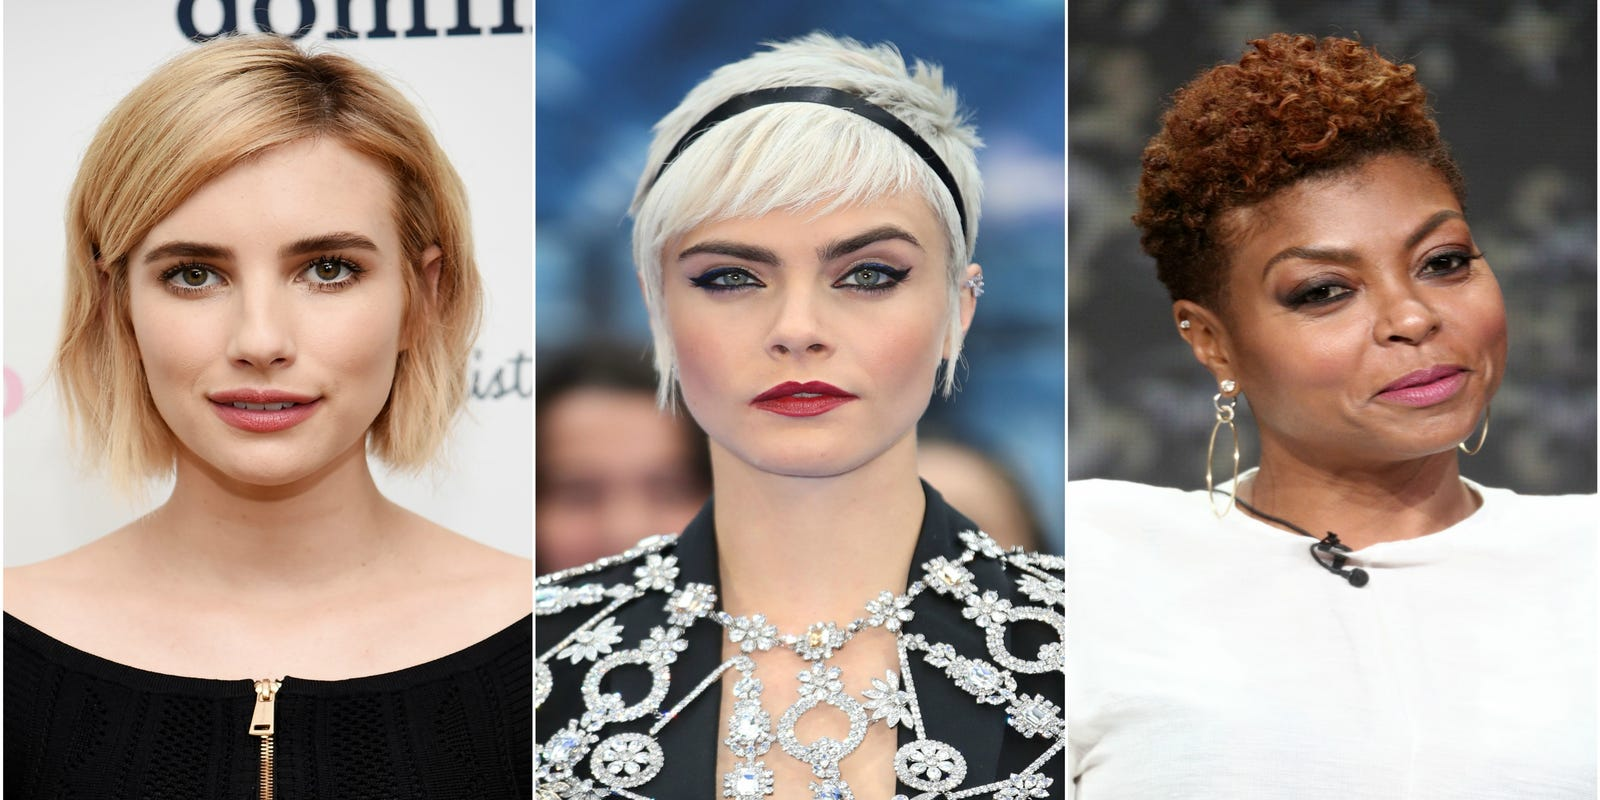 2017s Big Hair Trend Is Short Sweet And Empowering